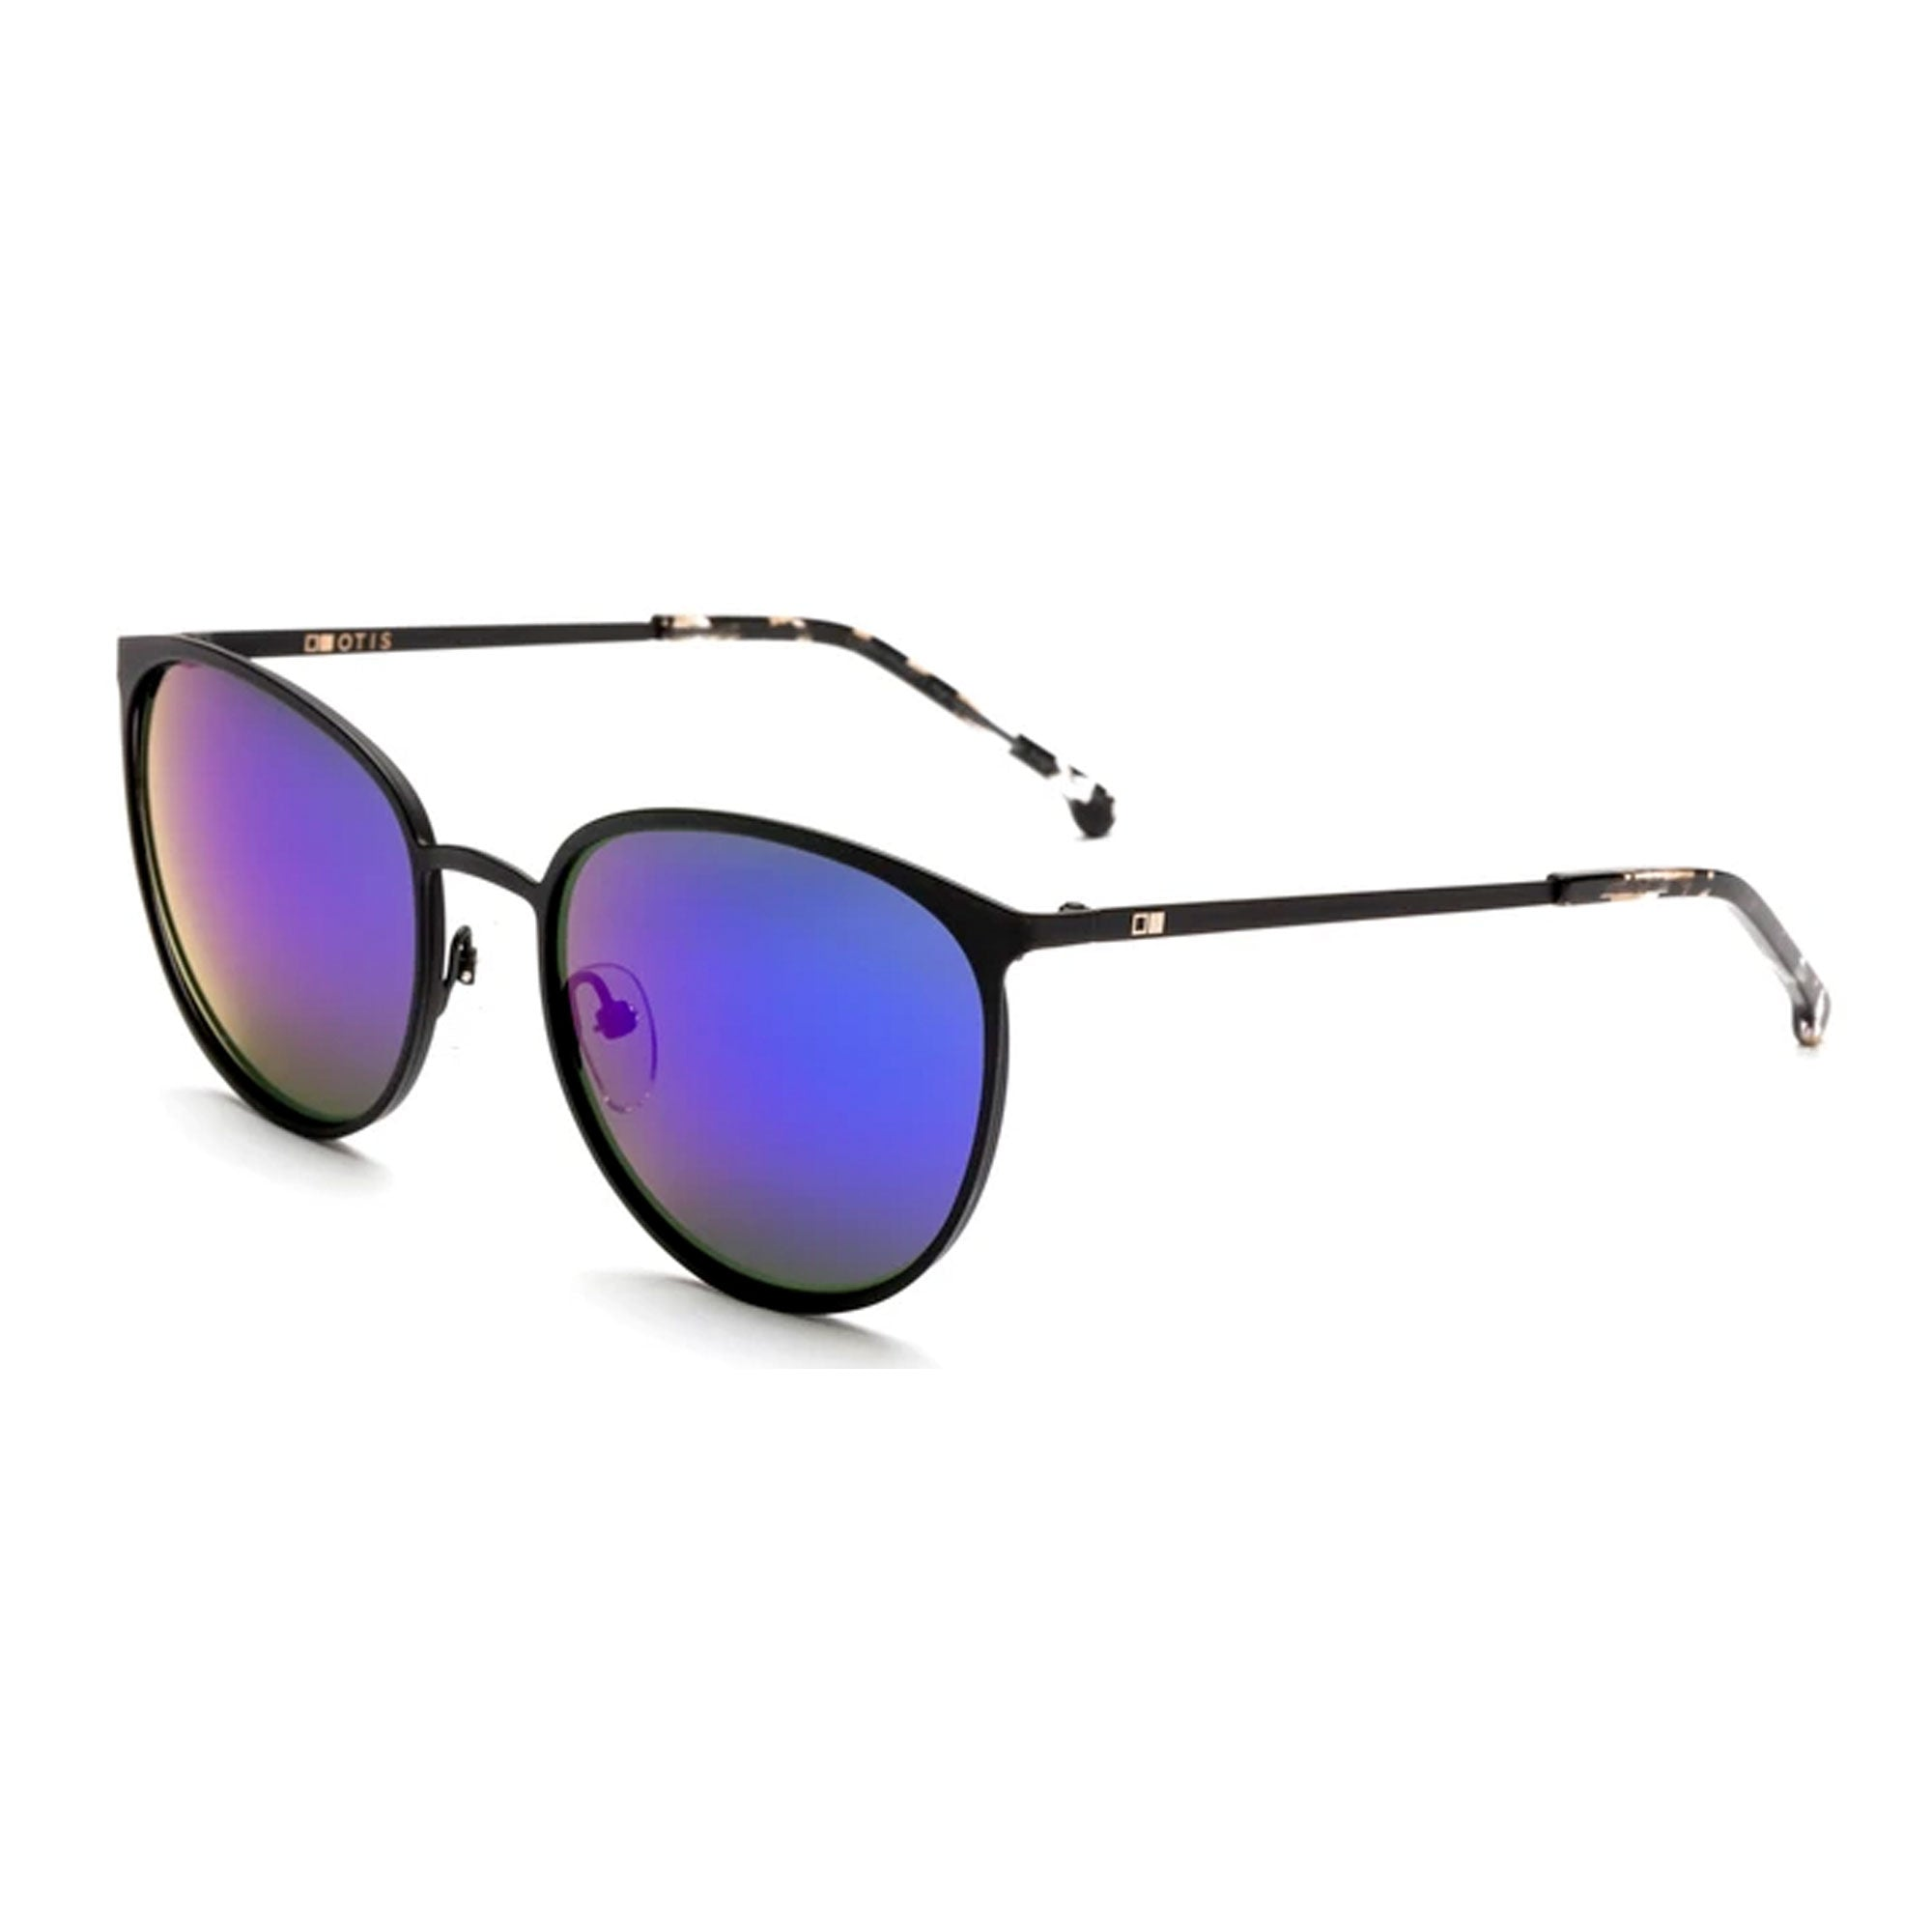 Otis Rumours Reflect Women's Sunglasses